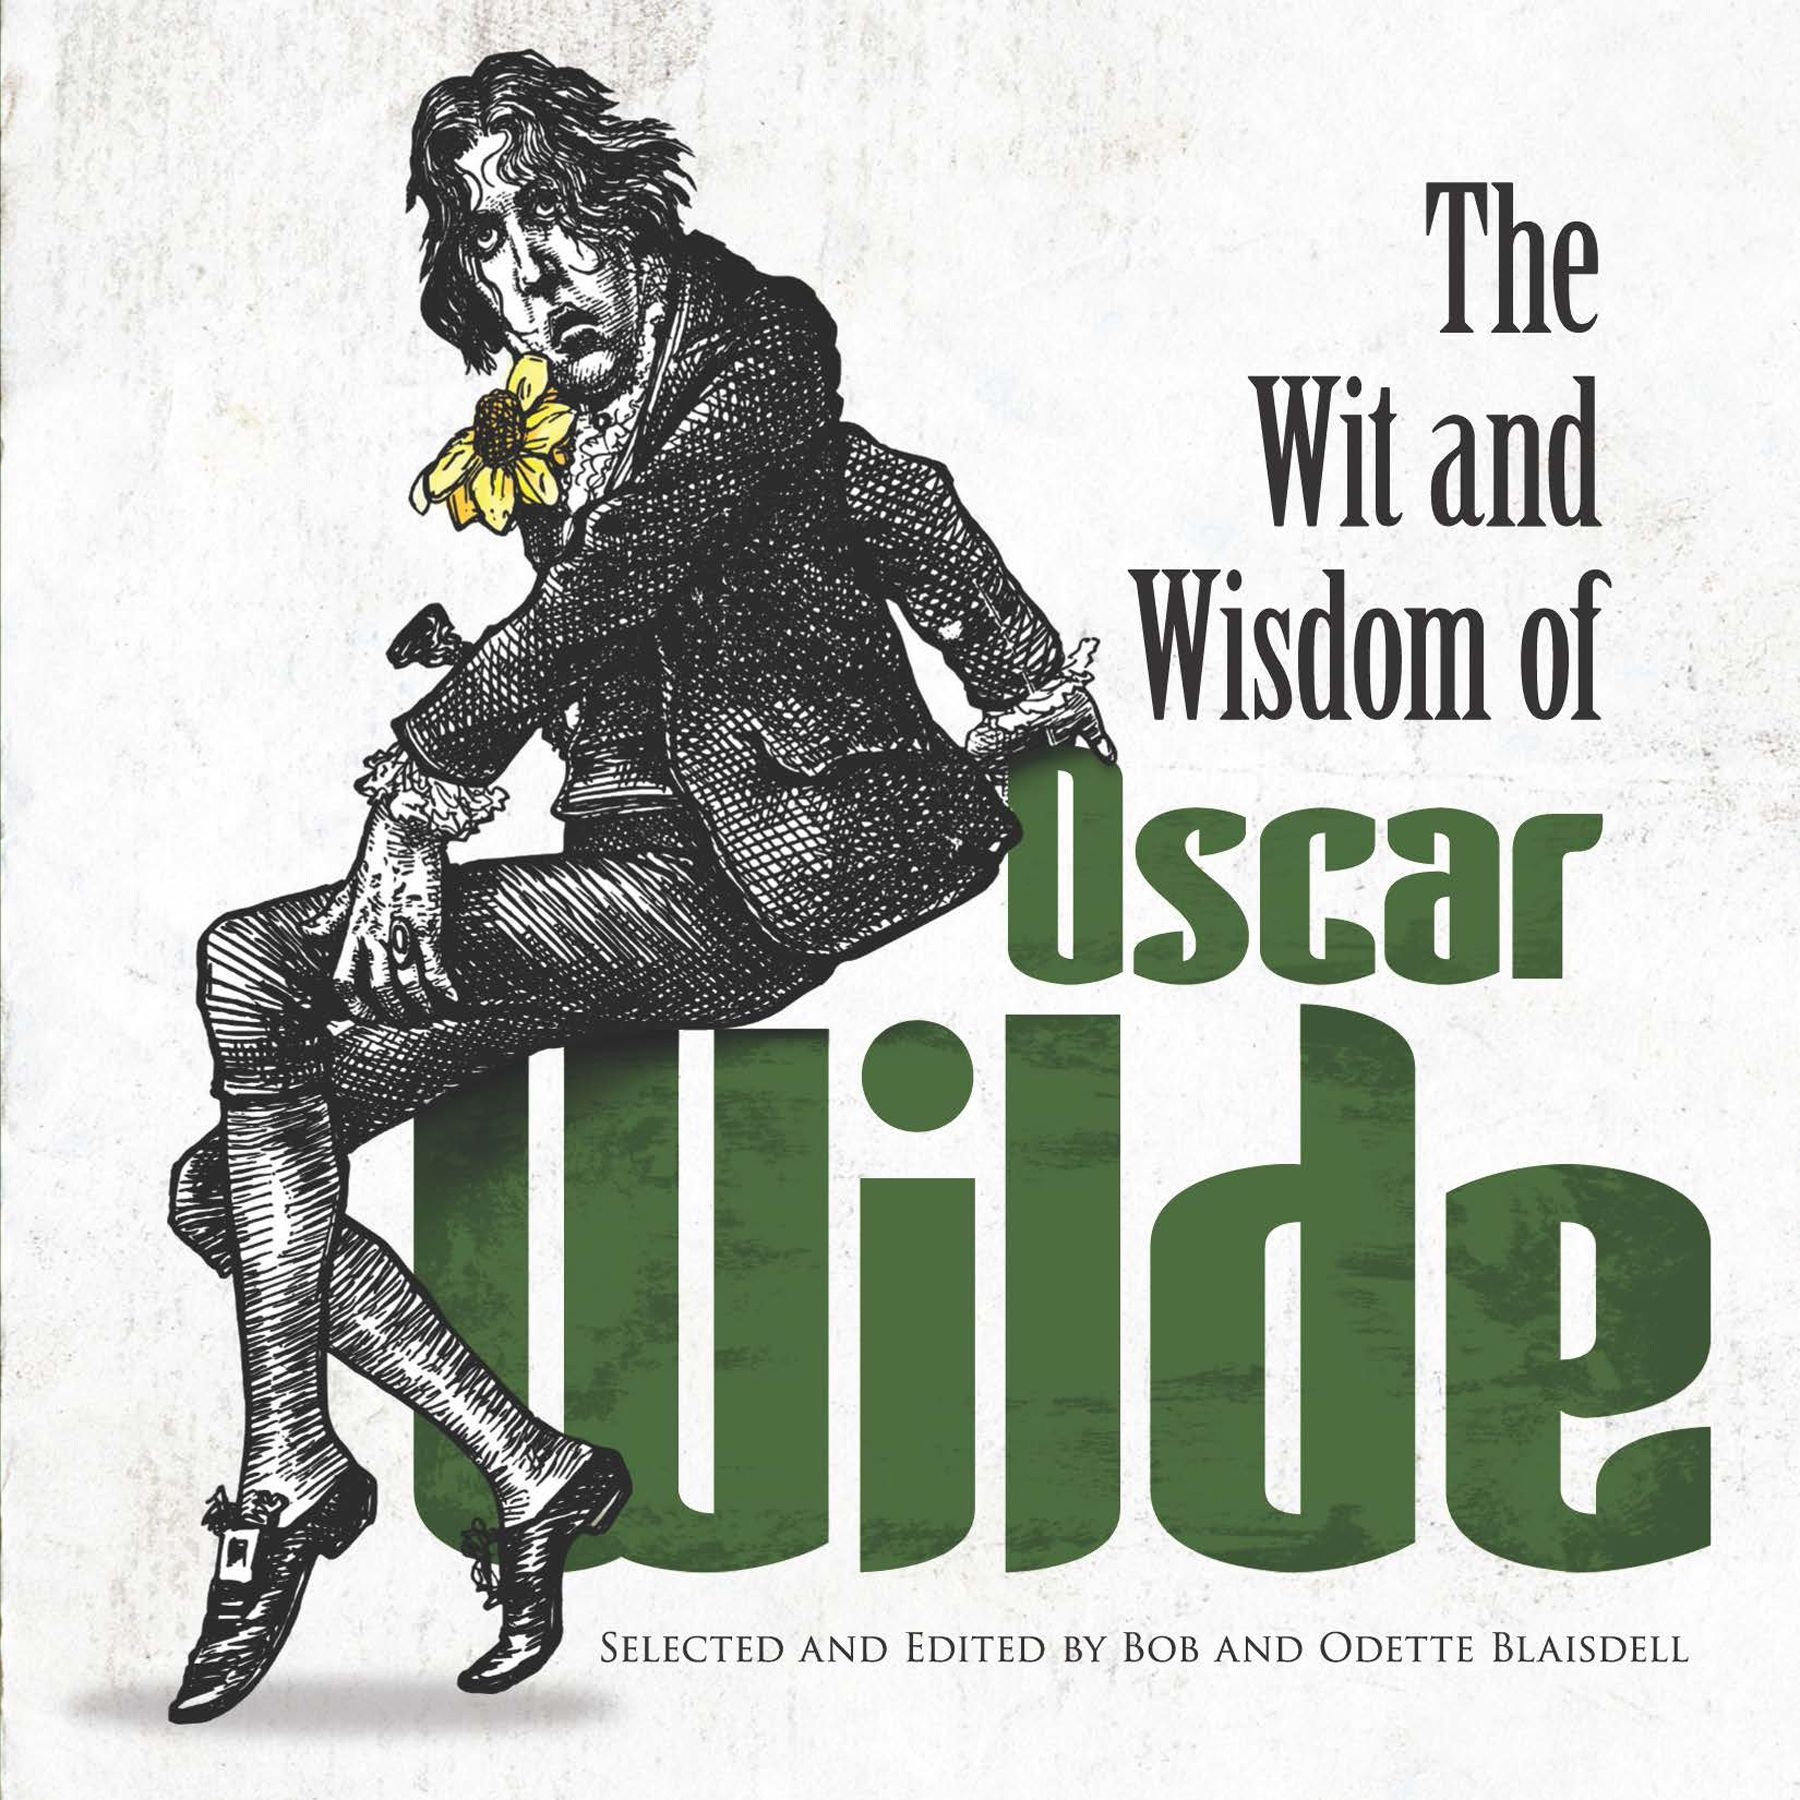 the early life and education of oscar wilde The irish poet, novelist, and dramatist oscar fingal o'flahertie wills wilde was born in dublin, ireland on october 16, 1854, the second son of unconventional parents his mother was lady jane francesca wilde, a poet, translator, and journalist who was active in the women's rights movement.